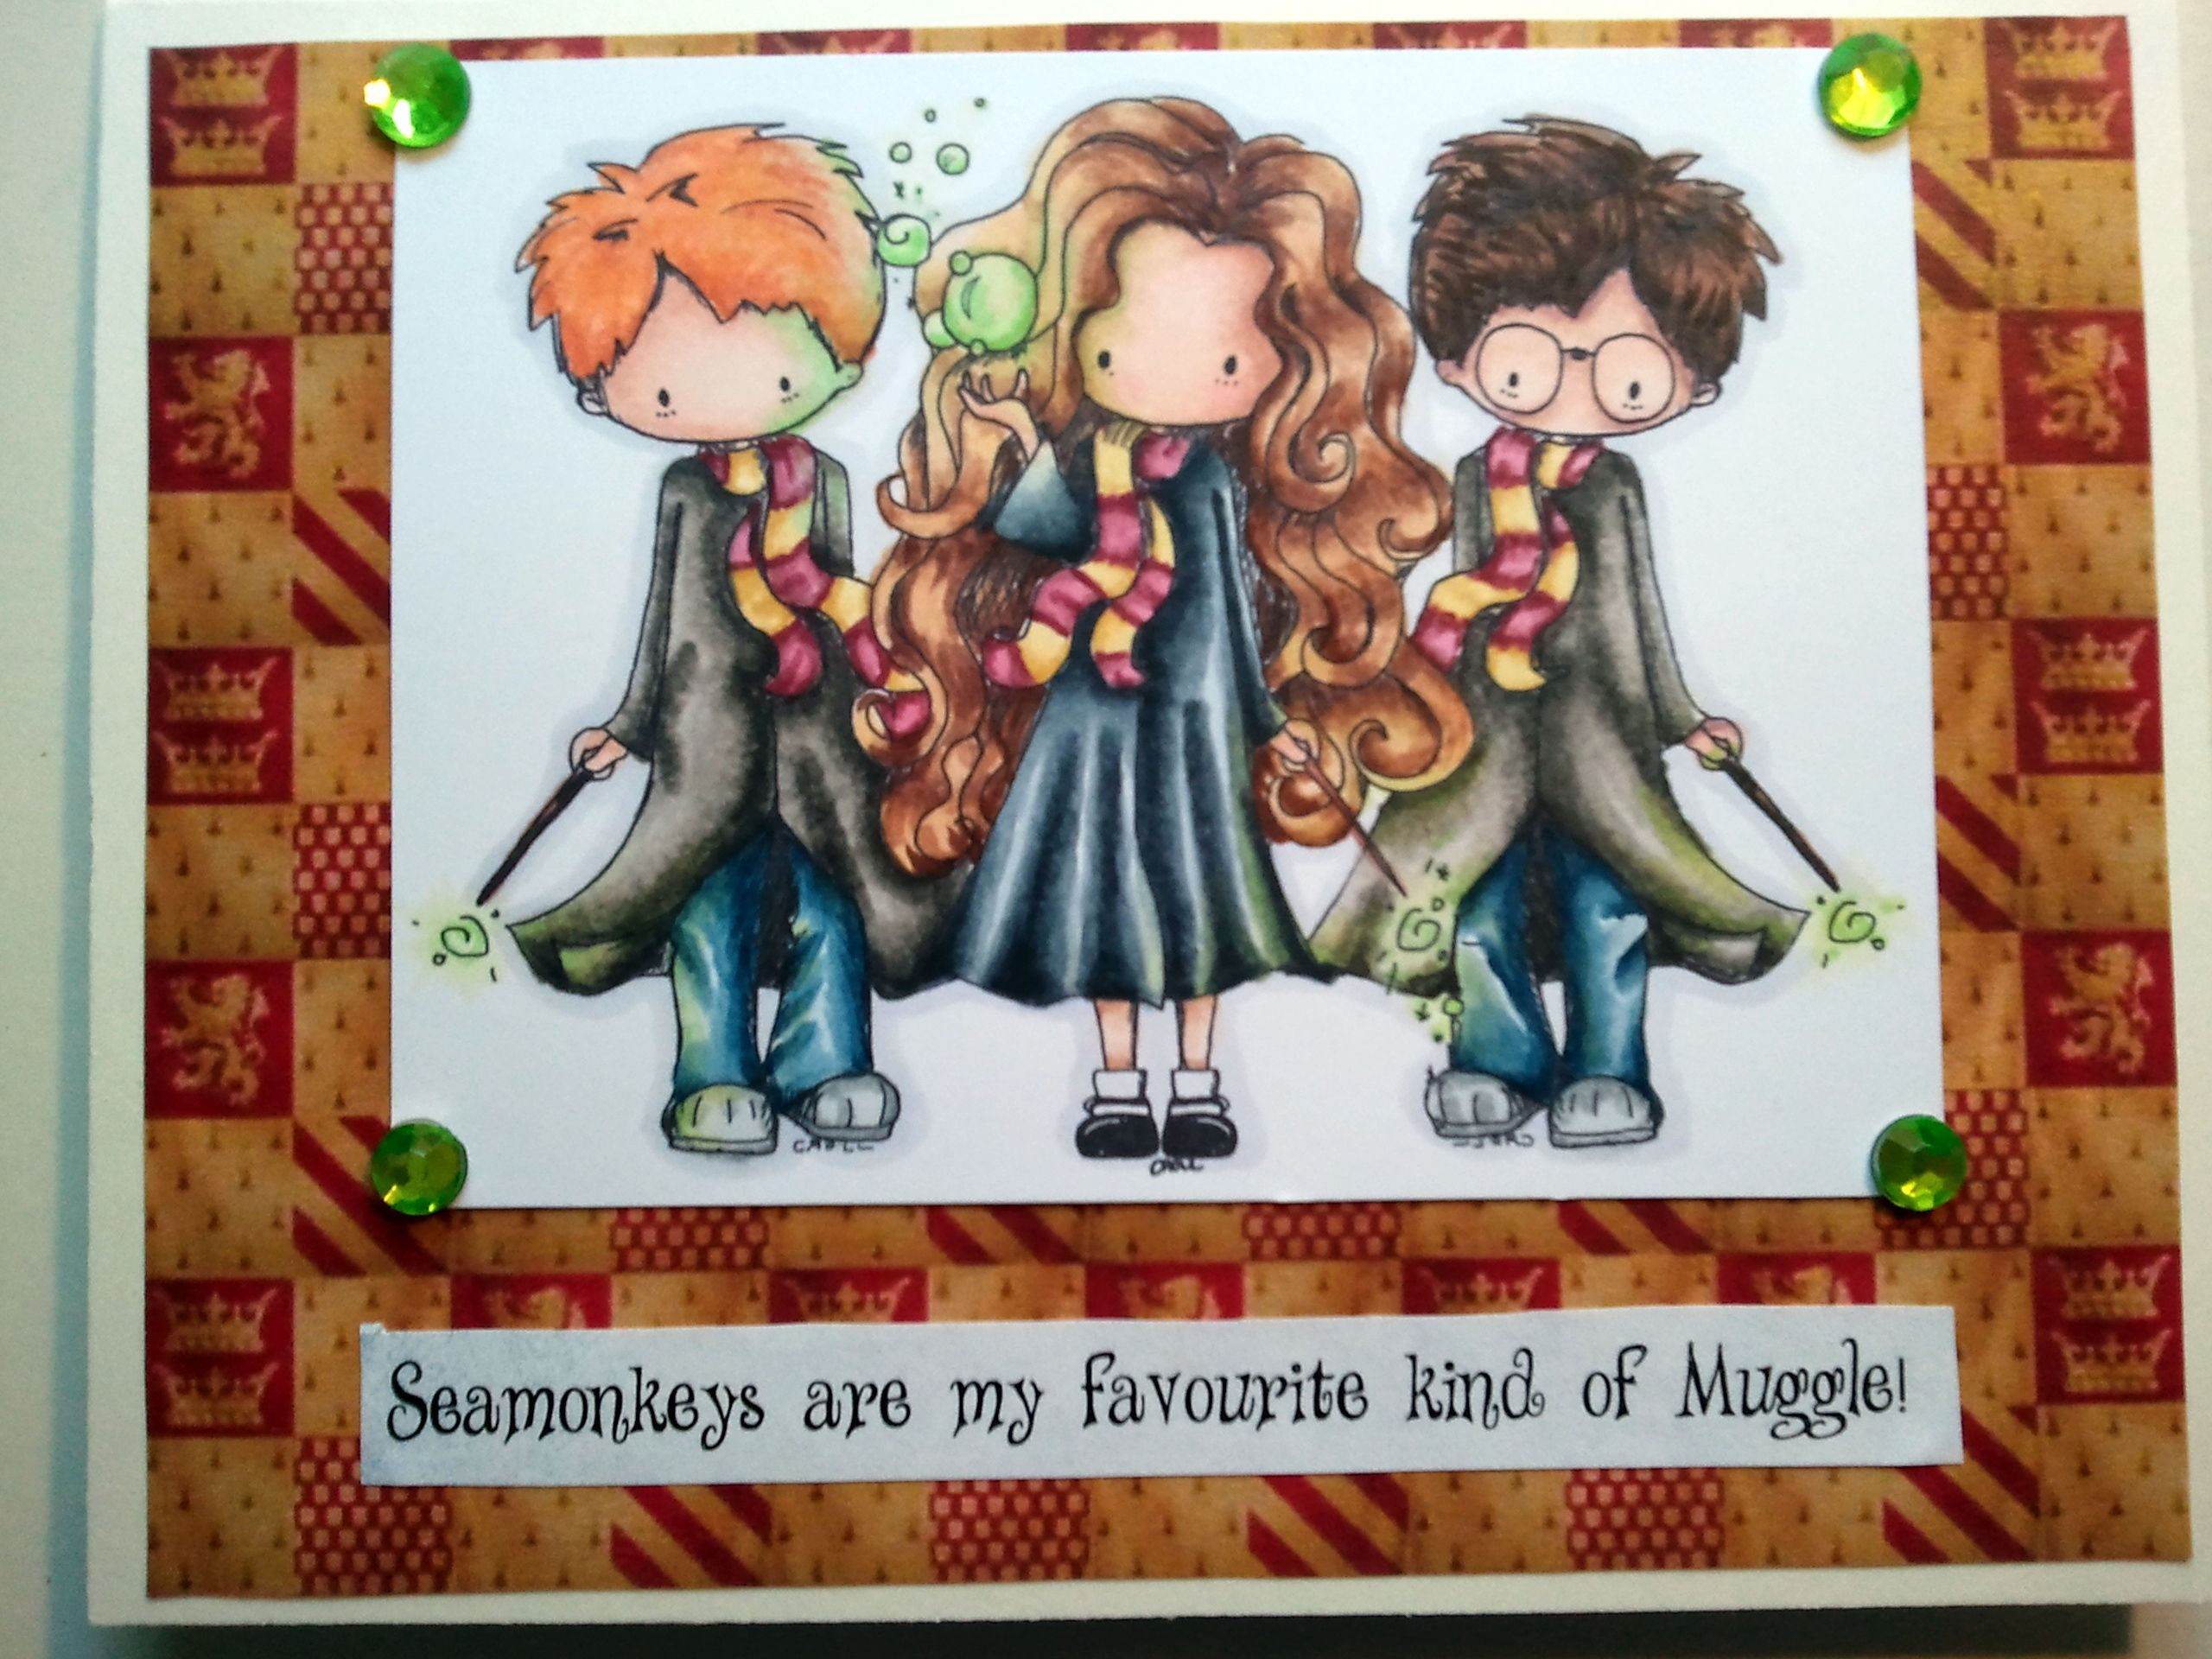 Harry Potter card - my favourite kind of Muggle. Tiddly Inks Wizards and Wizardette.